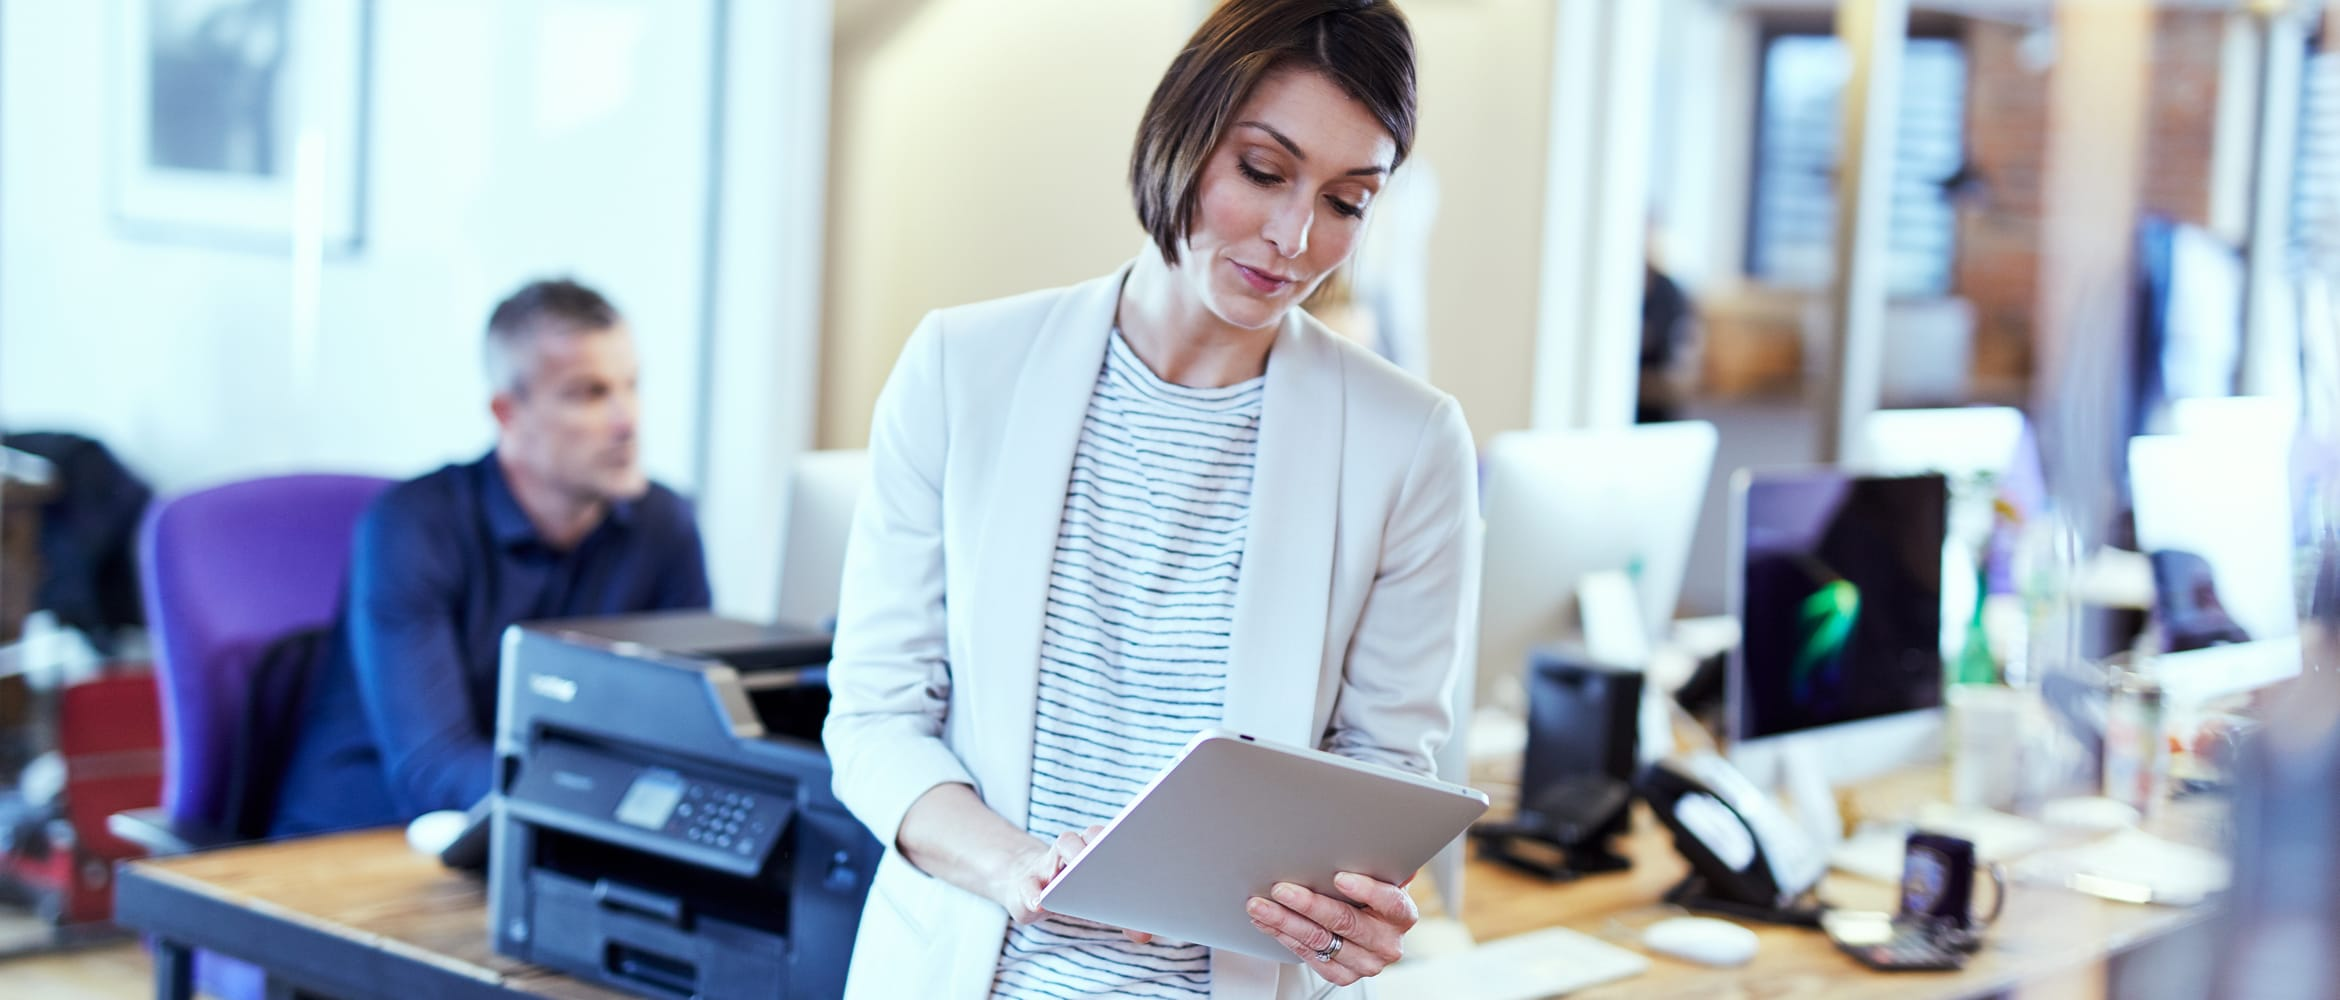 A lady printing a document from a tablet device in a small office environment